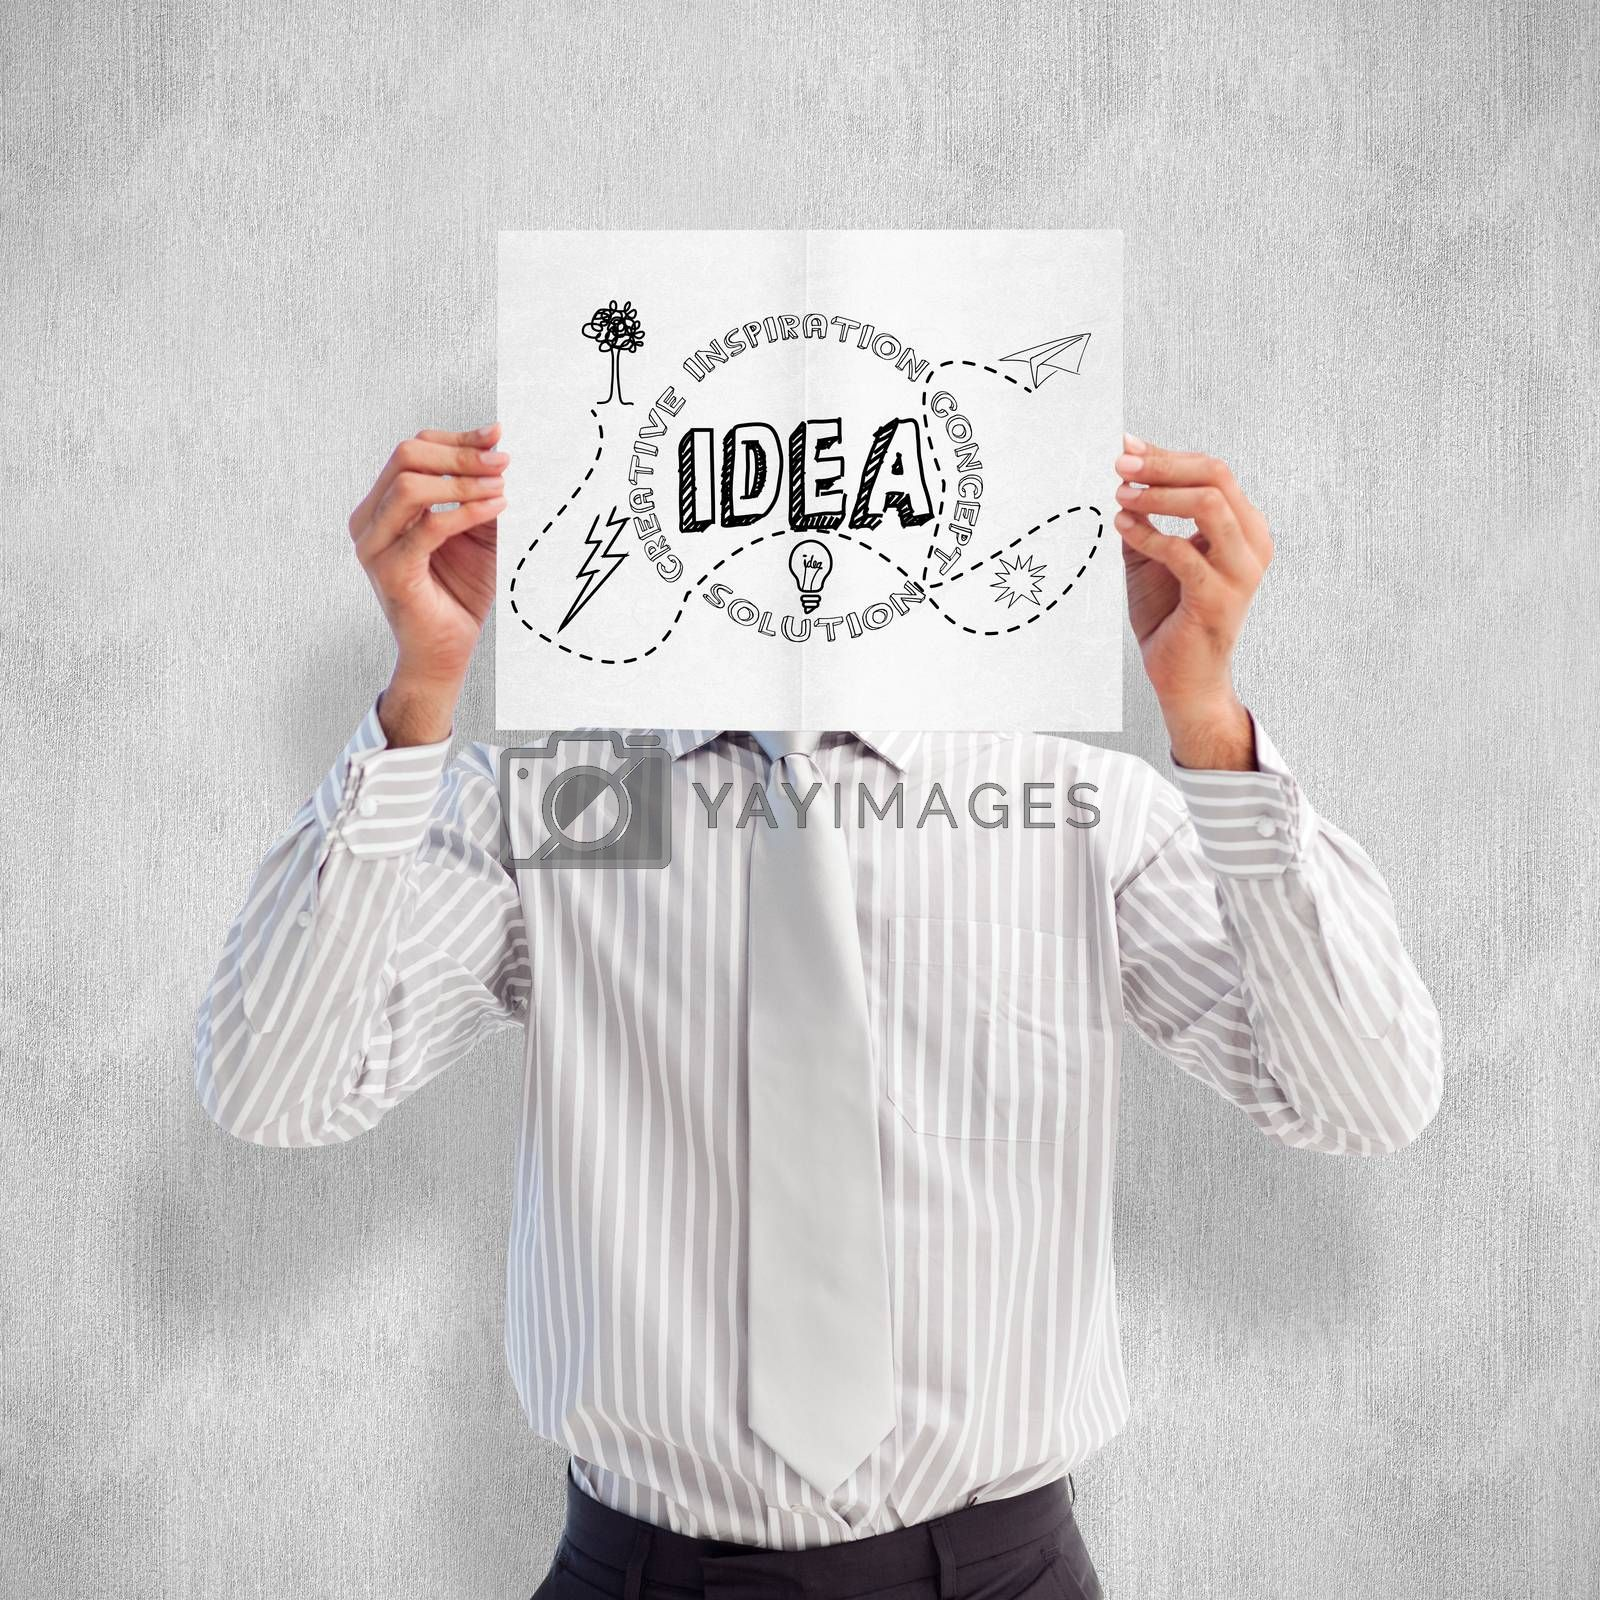 Businessman holding a white card covering his face against white and grey background